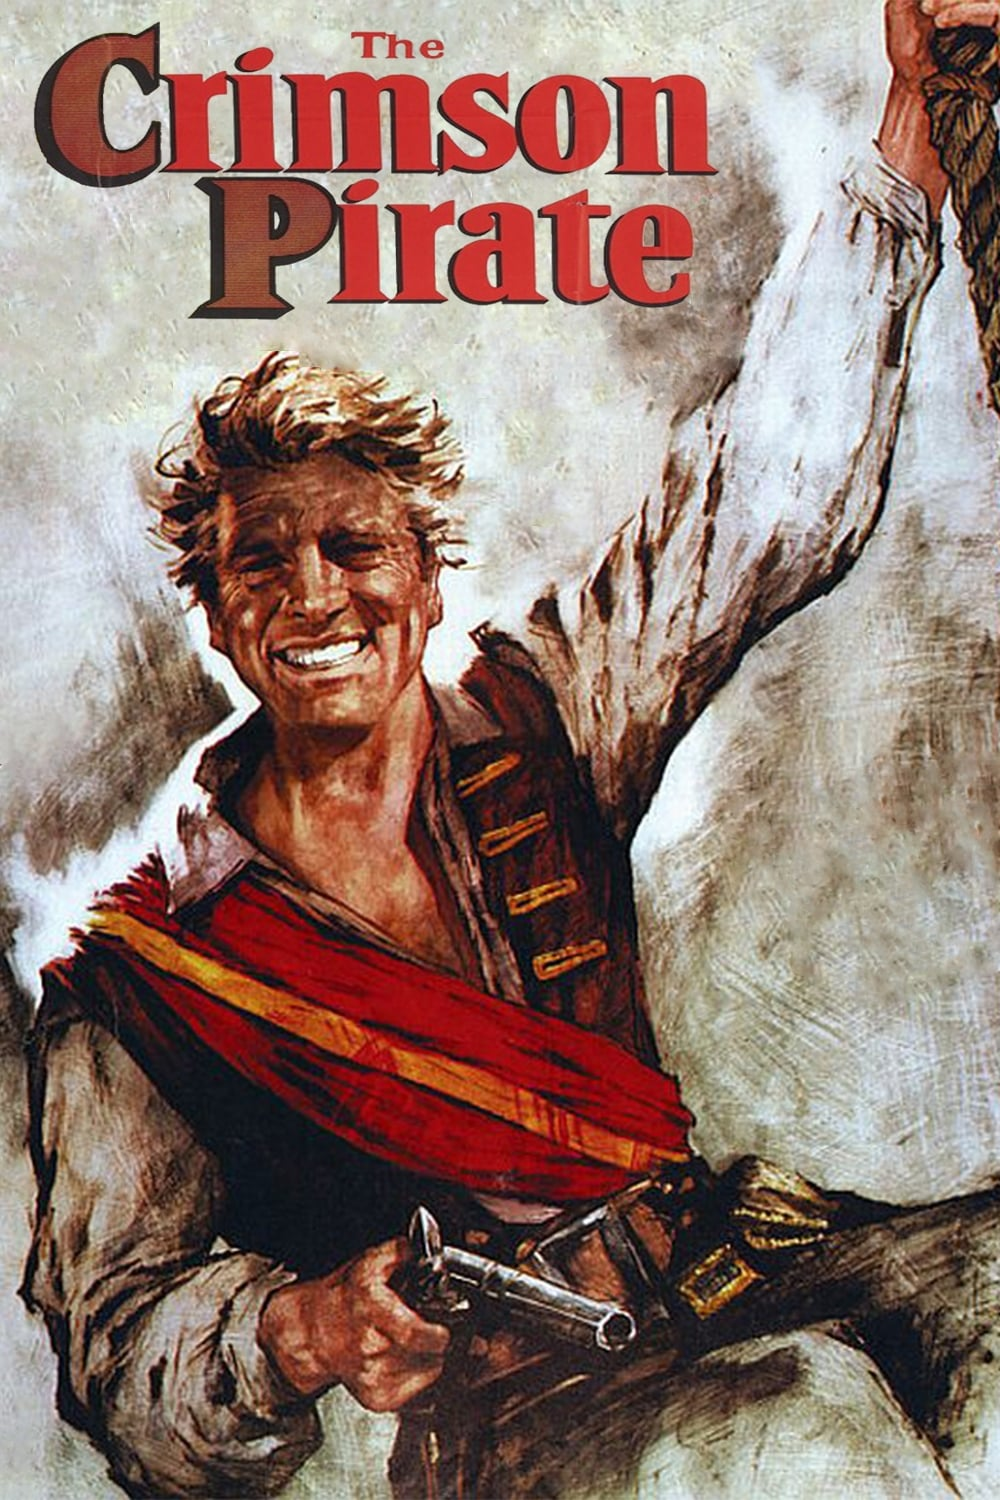 The Crimson Pirate (1952)